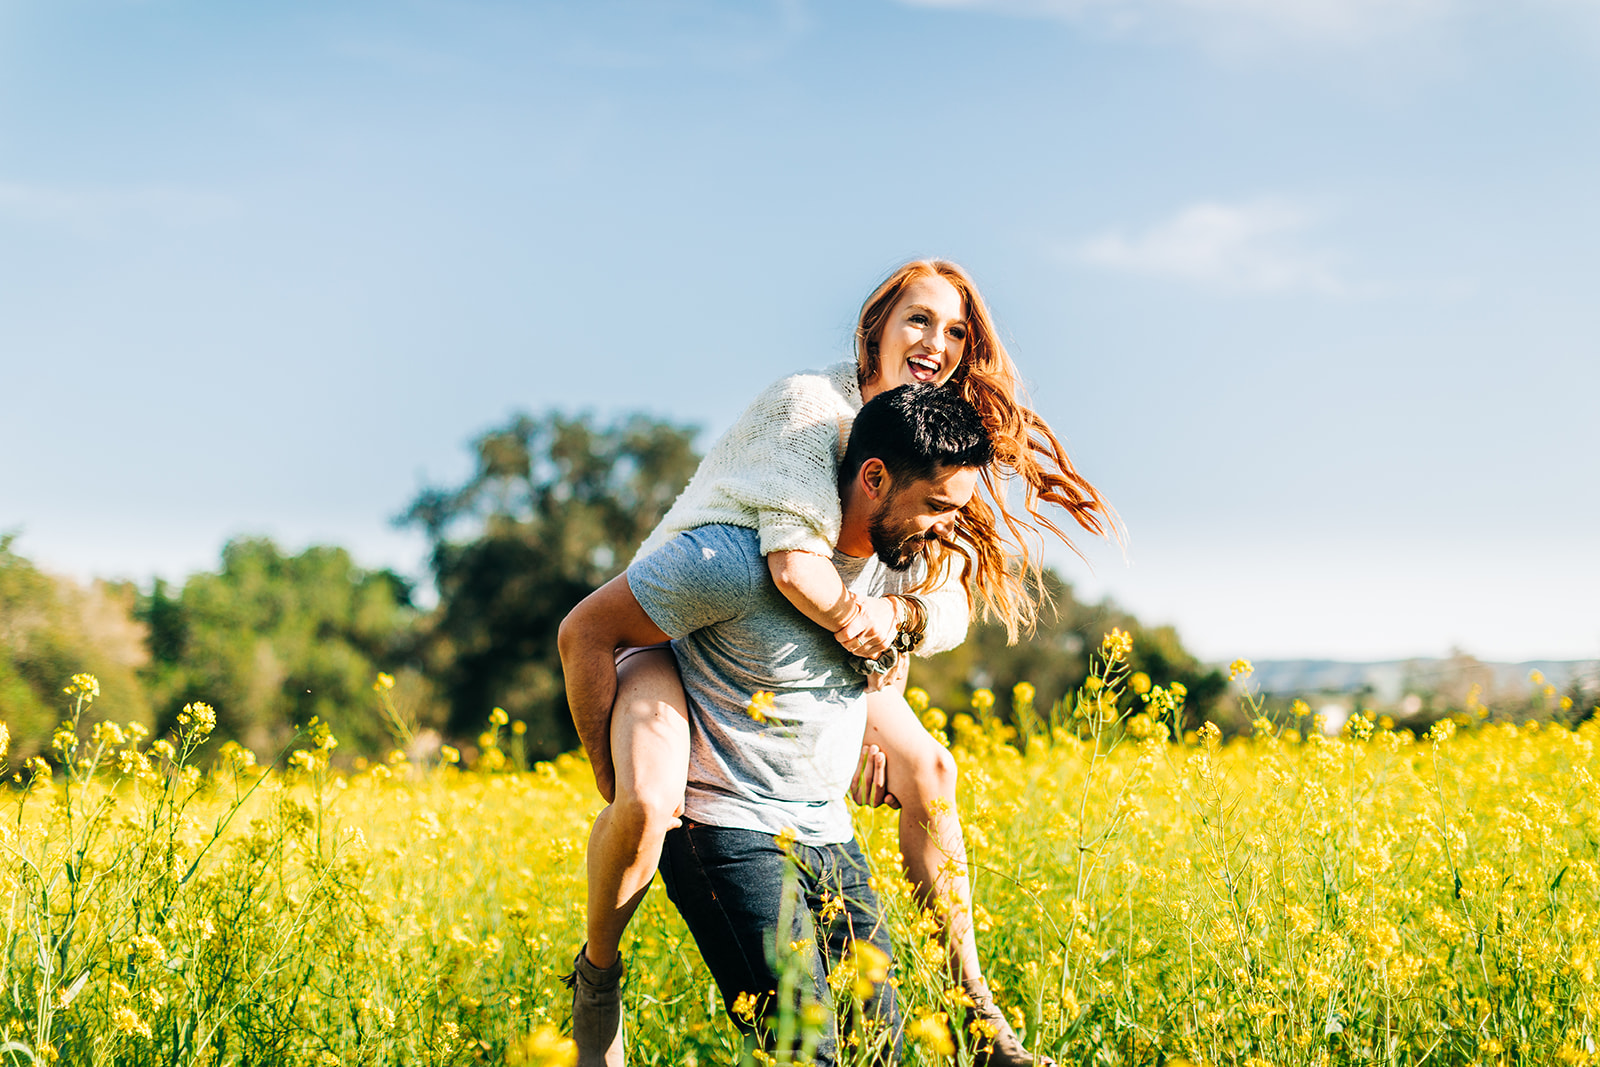 Katie-Yovin_Richard_Superbloom-Engagement-Photos_Clarisse-Rae_Southern-California-Wedding-Photographer-Orange-County-Engagement-Photos-8